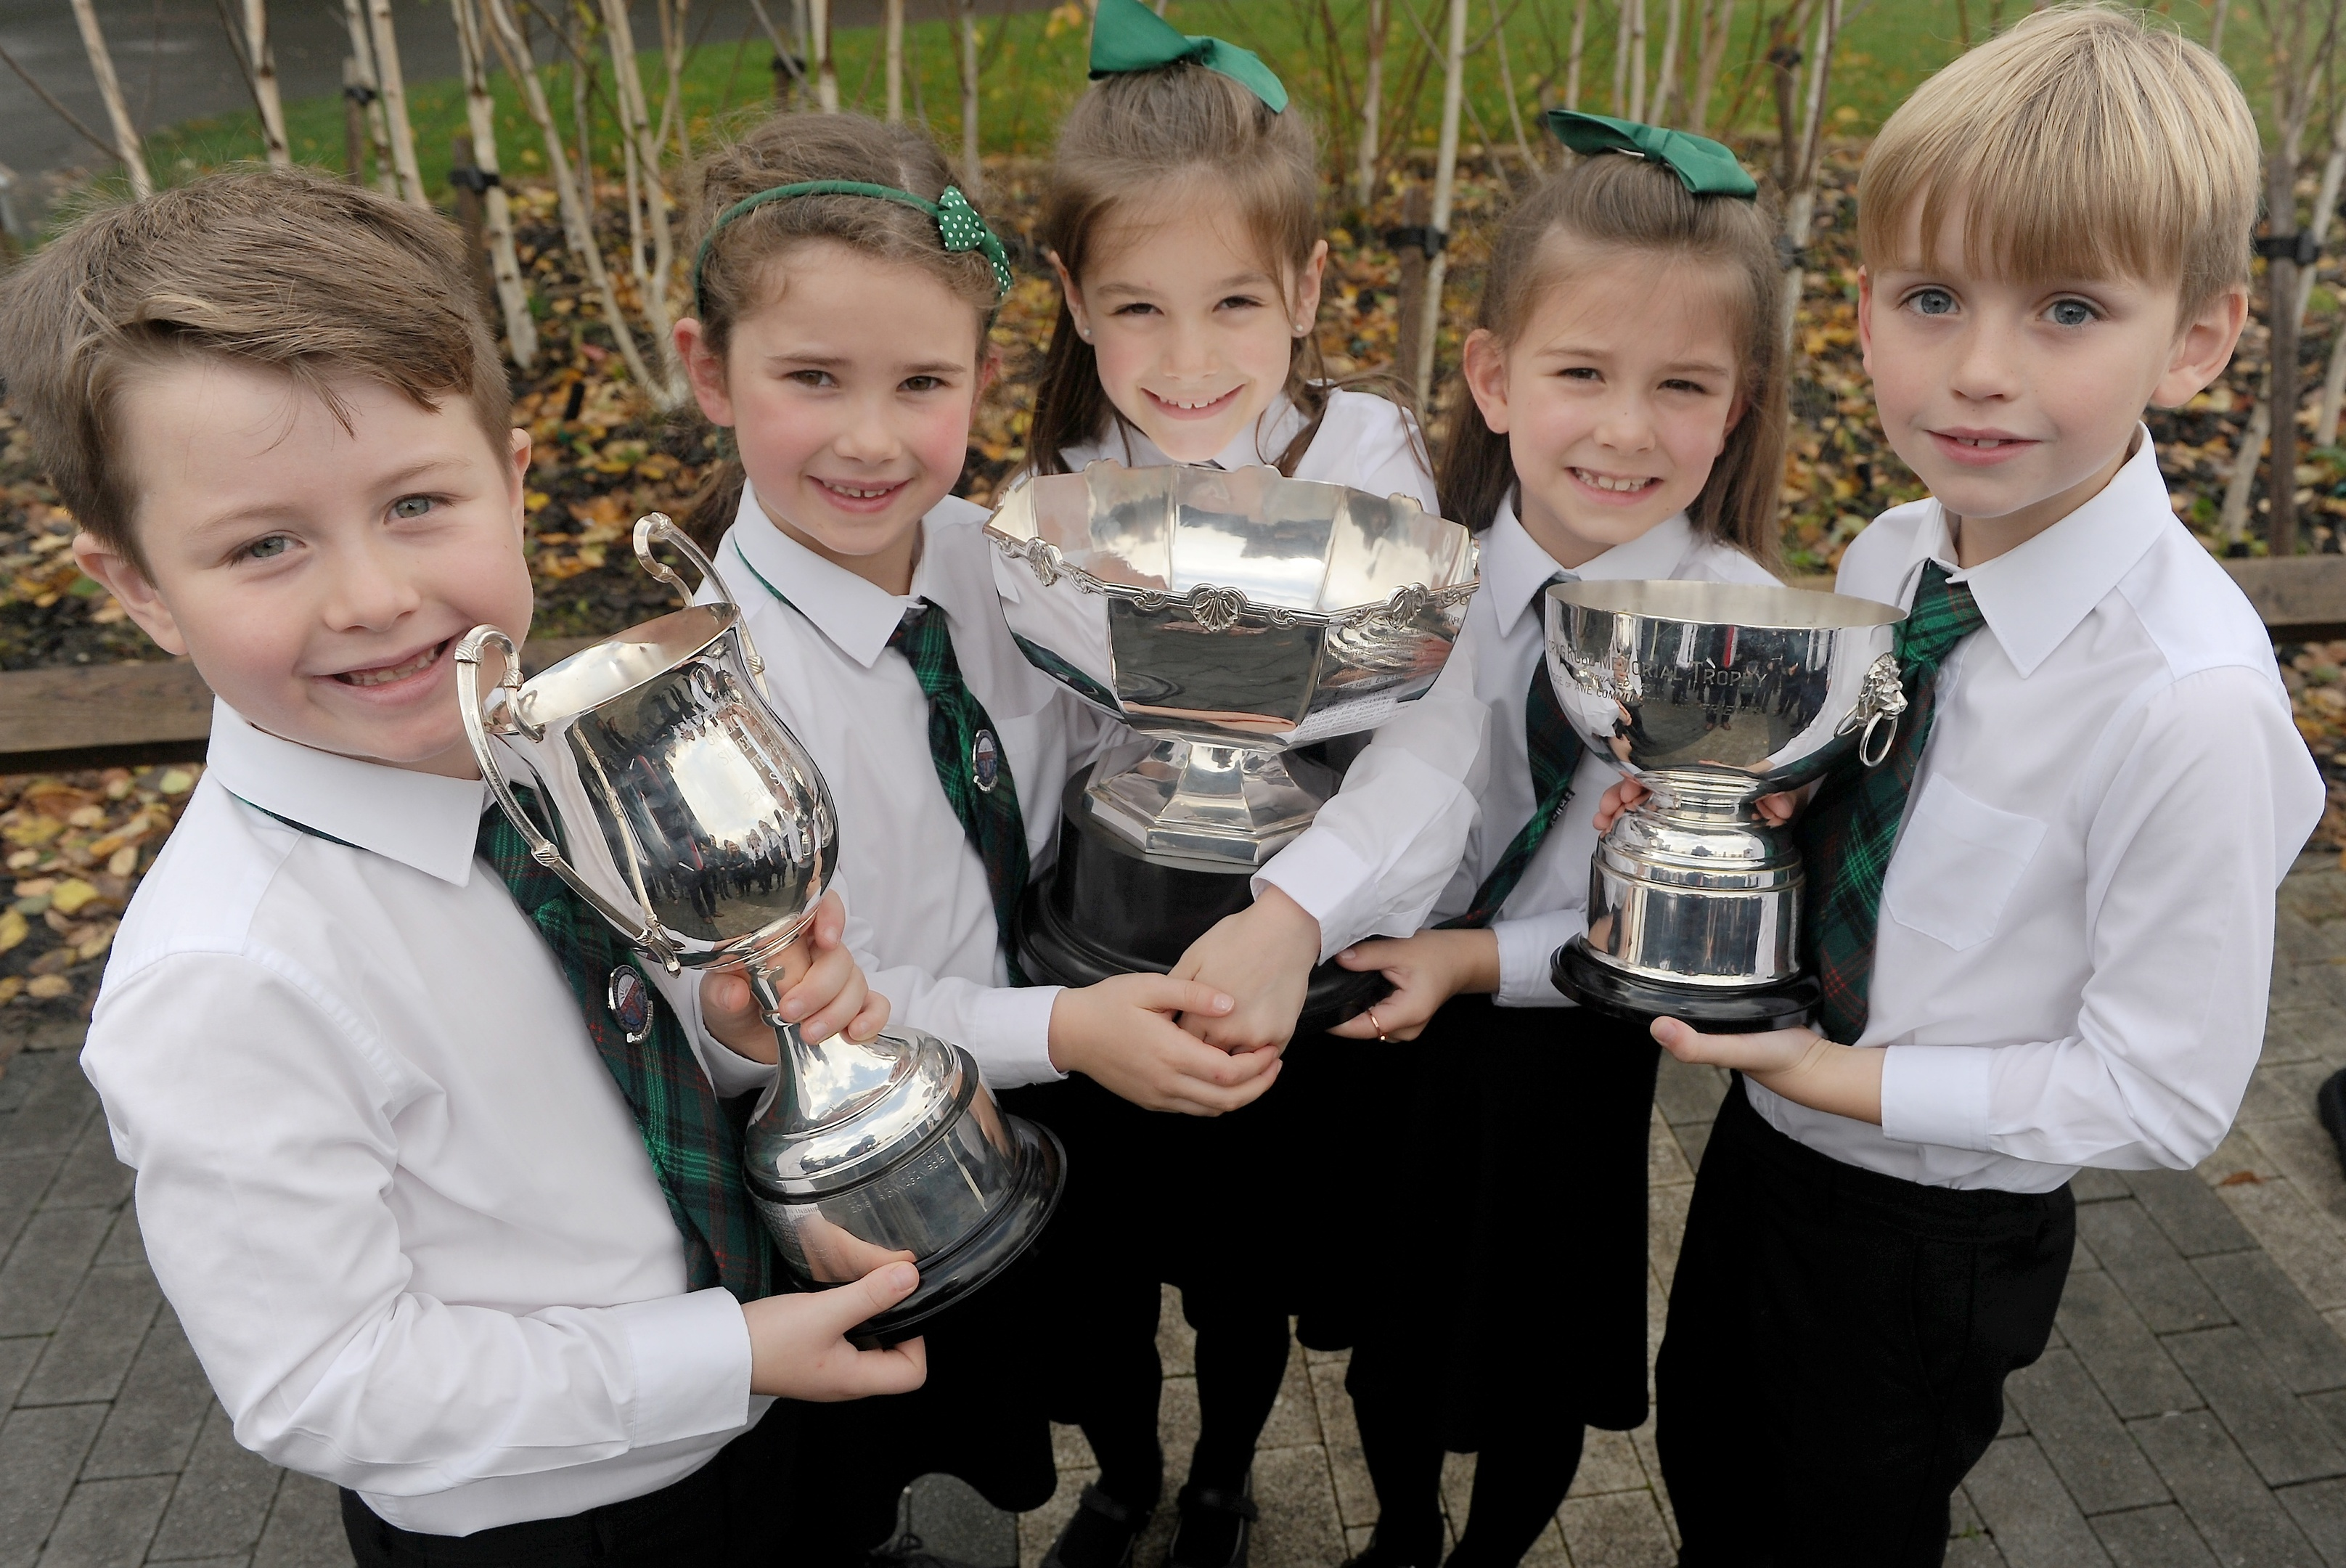 Rionnagan Rois from Ross-shire with their three trophies for Choral Singing. (L-R)Five  members of the choir  Alisdair Gordon, Morag Ross, Alex Goodall, Sophie Stewart and Ruairidh Somerville with the trophies won by the entire choir.